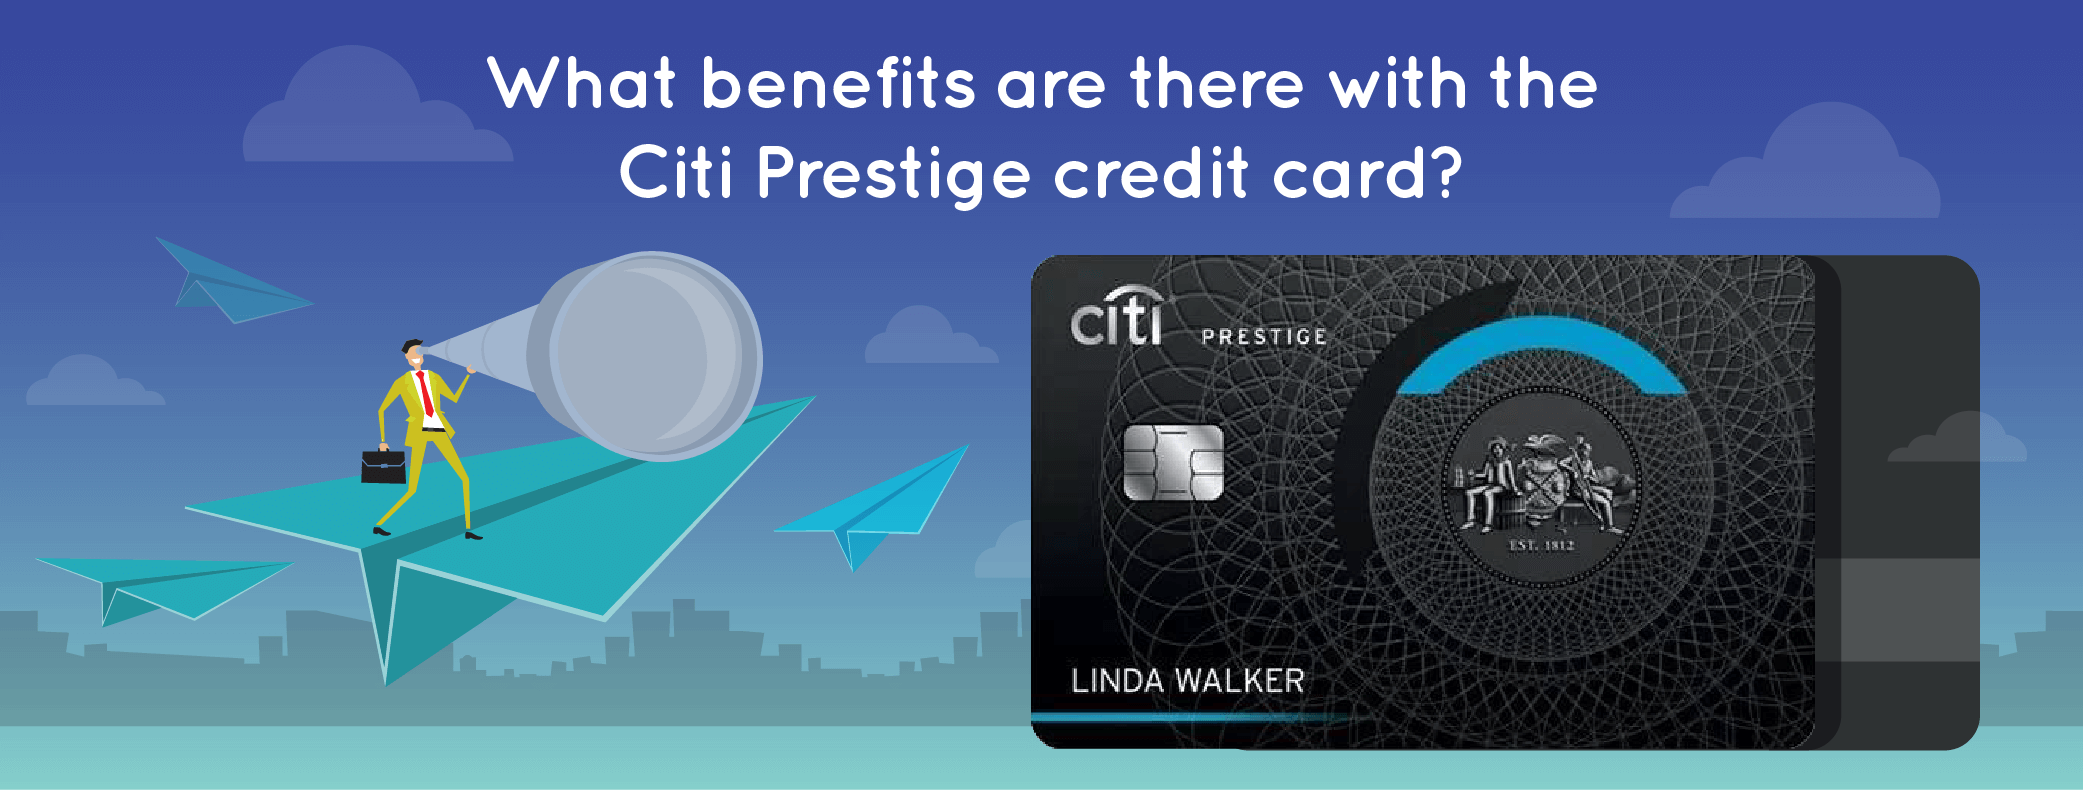 What benefits are there with the Citi Prestige credit card?